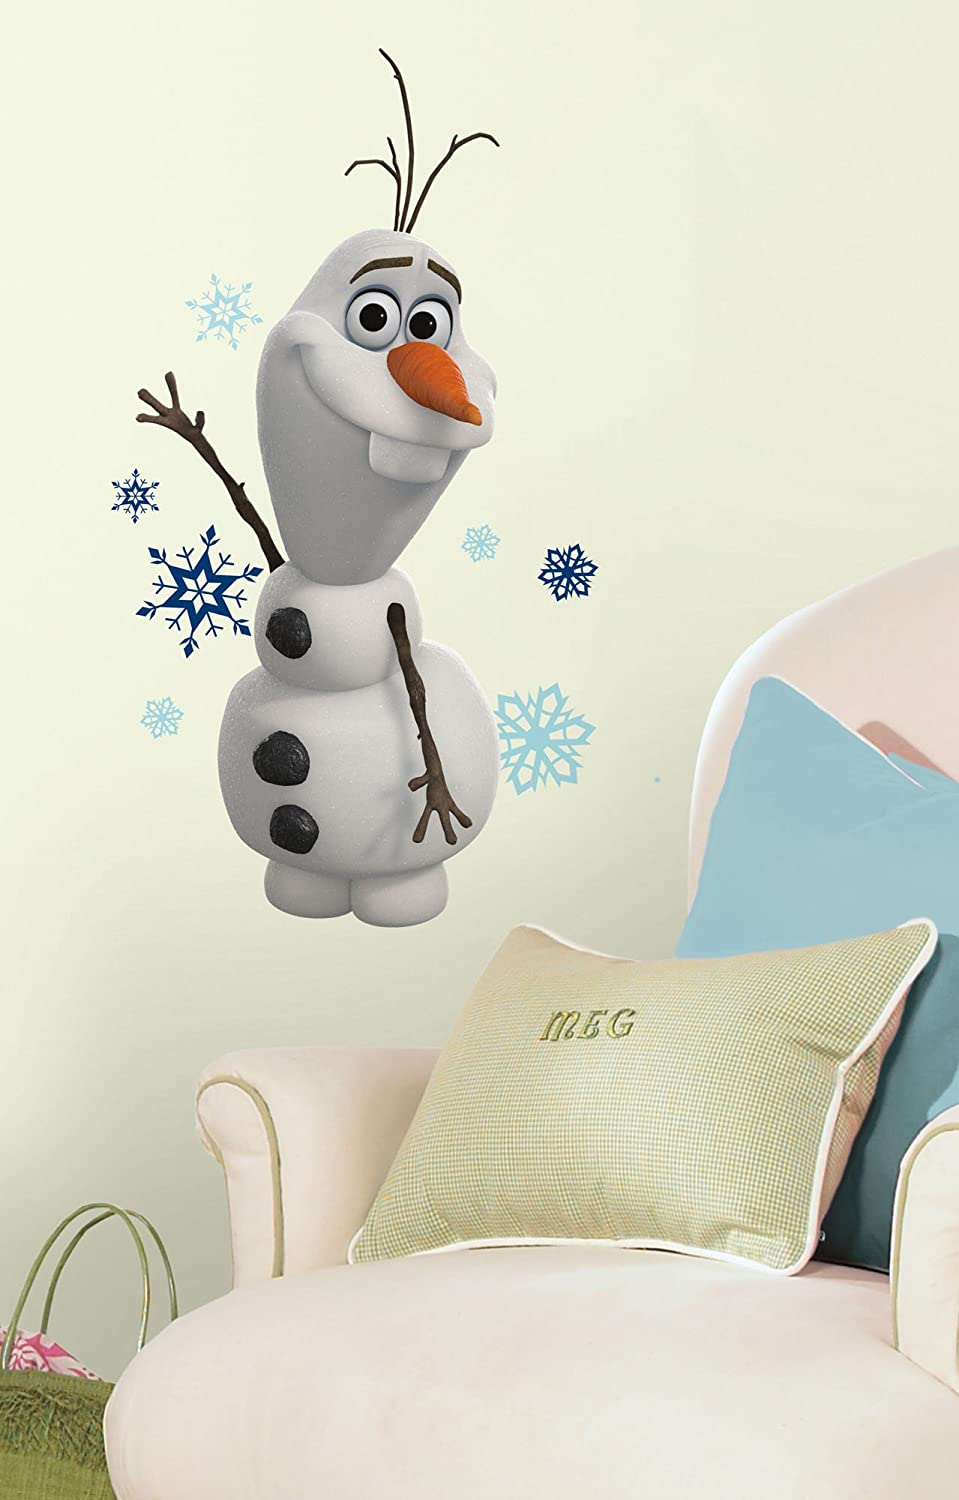 Roommates RMK2372SCS Frozen Olaf The Snow Man Peel And Stick Wall Decals,  25 Count   Decorative Wall Appliques   Amazon.com